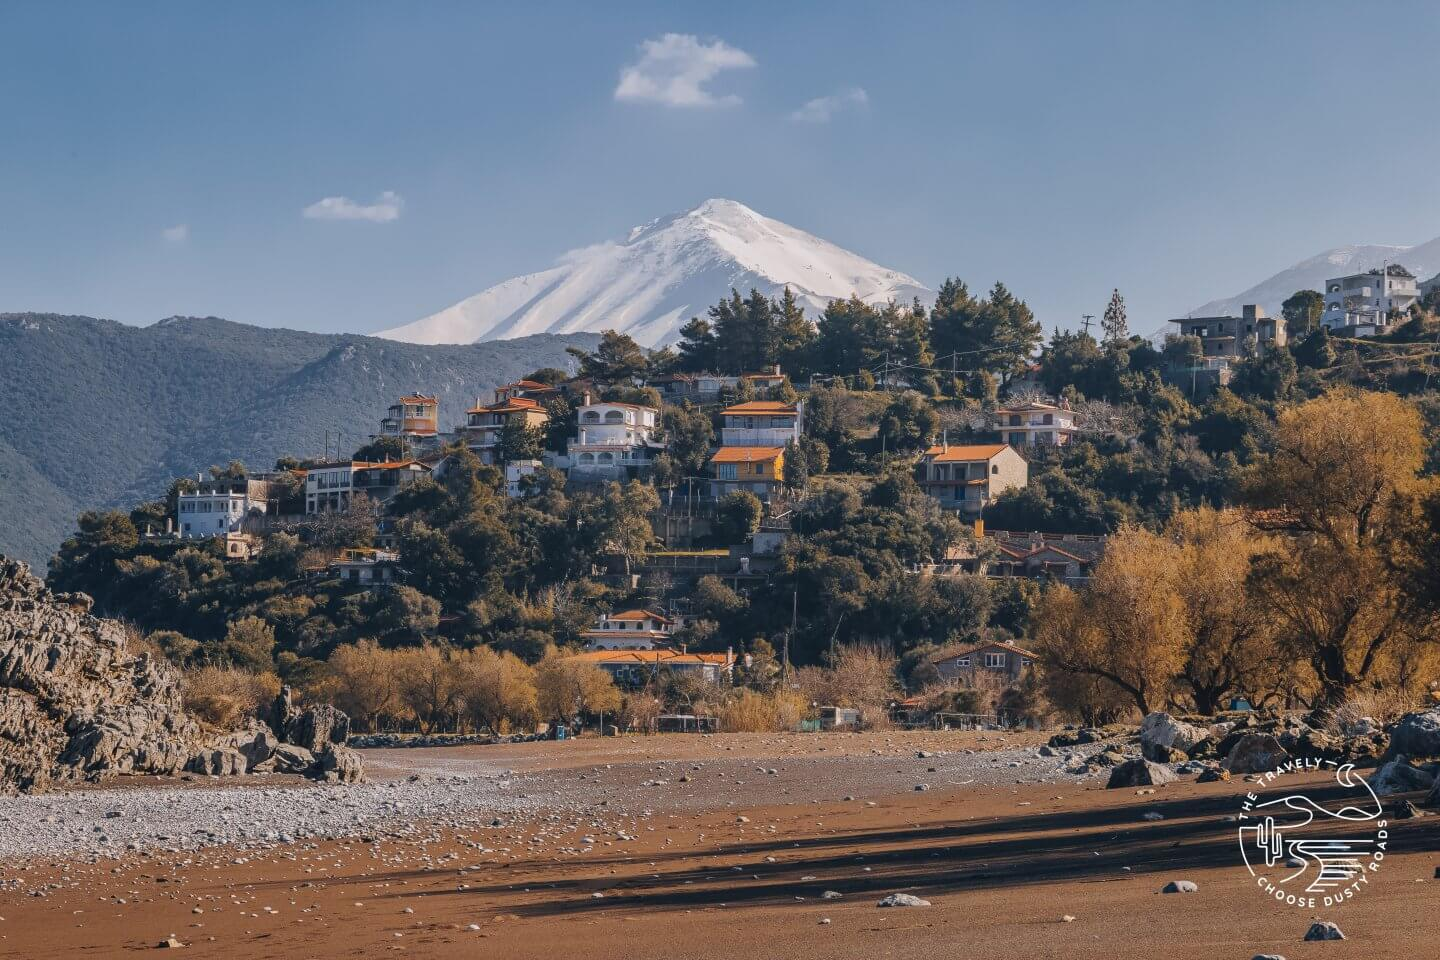 Evia Island - between mountains and beaches